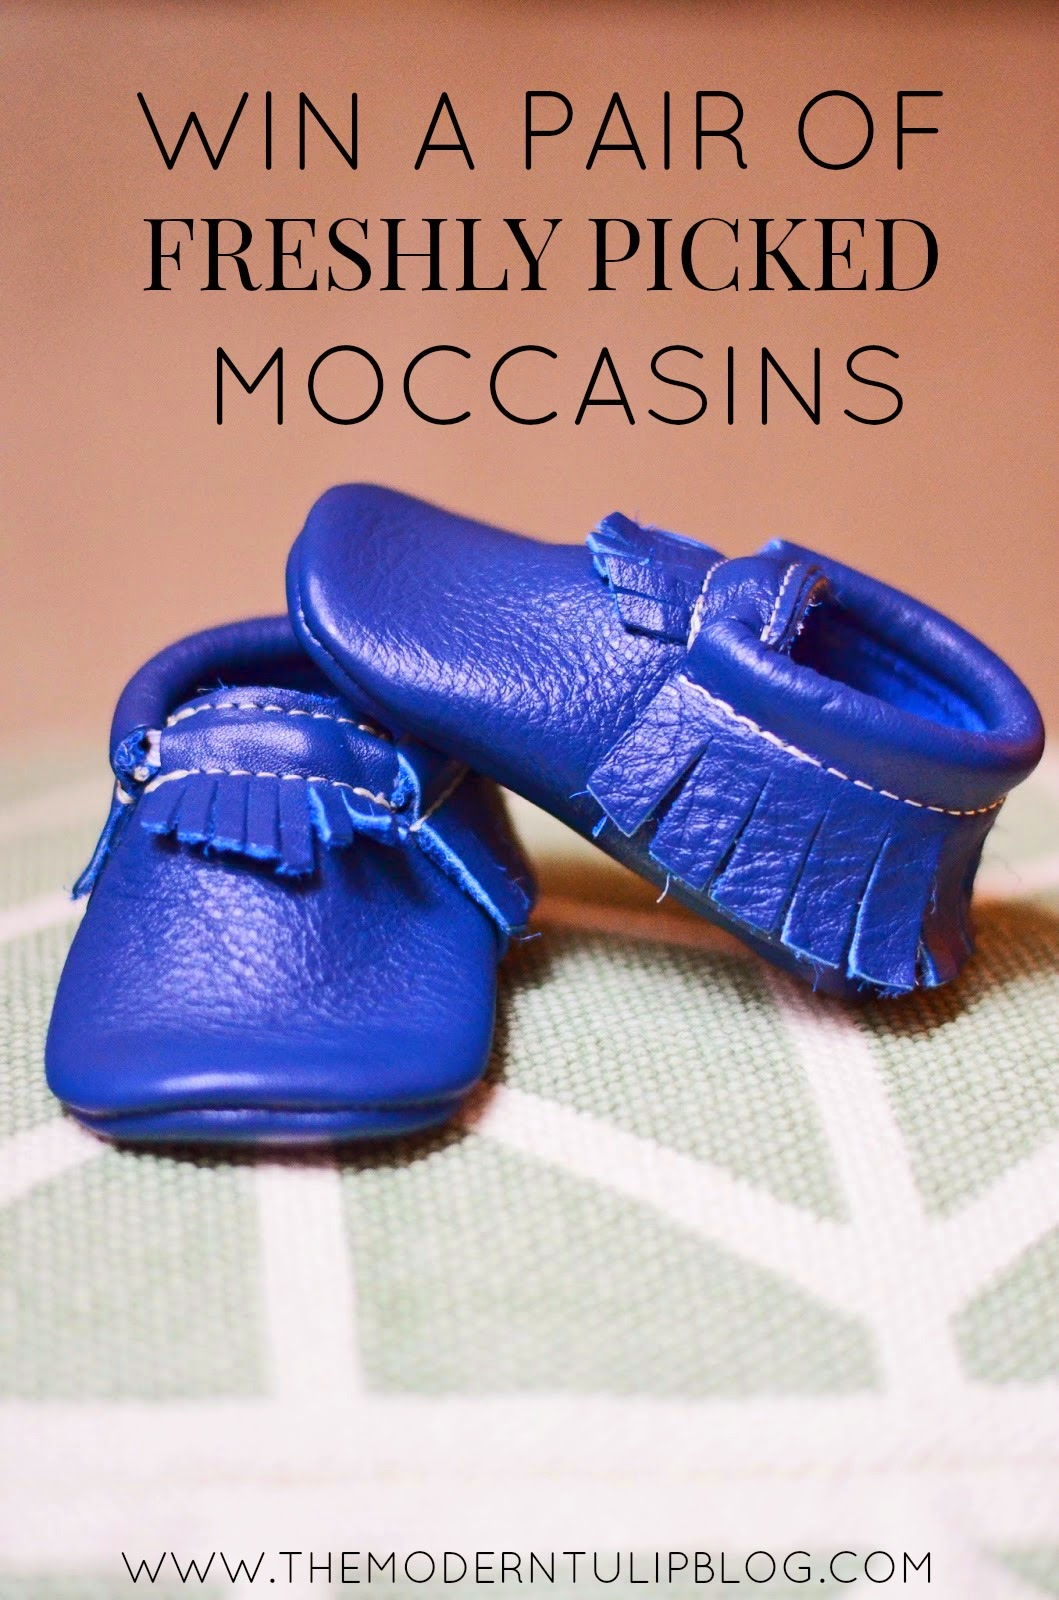 Win a Pair of Freshly Picked Moccasins